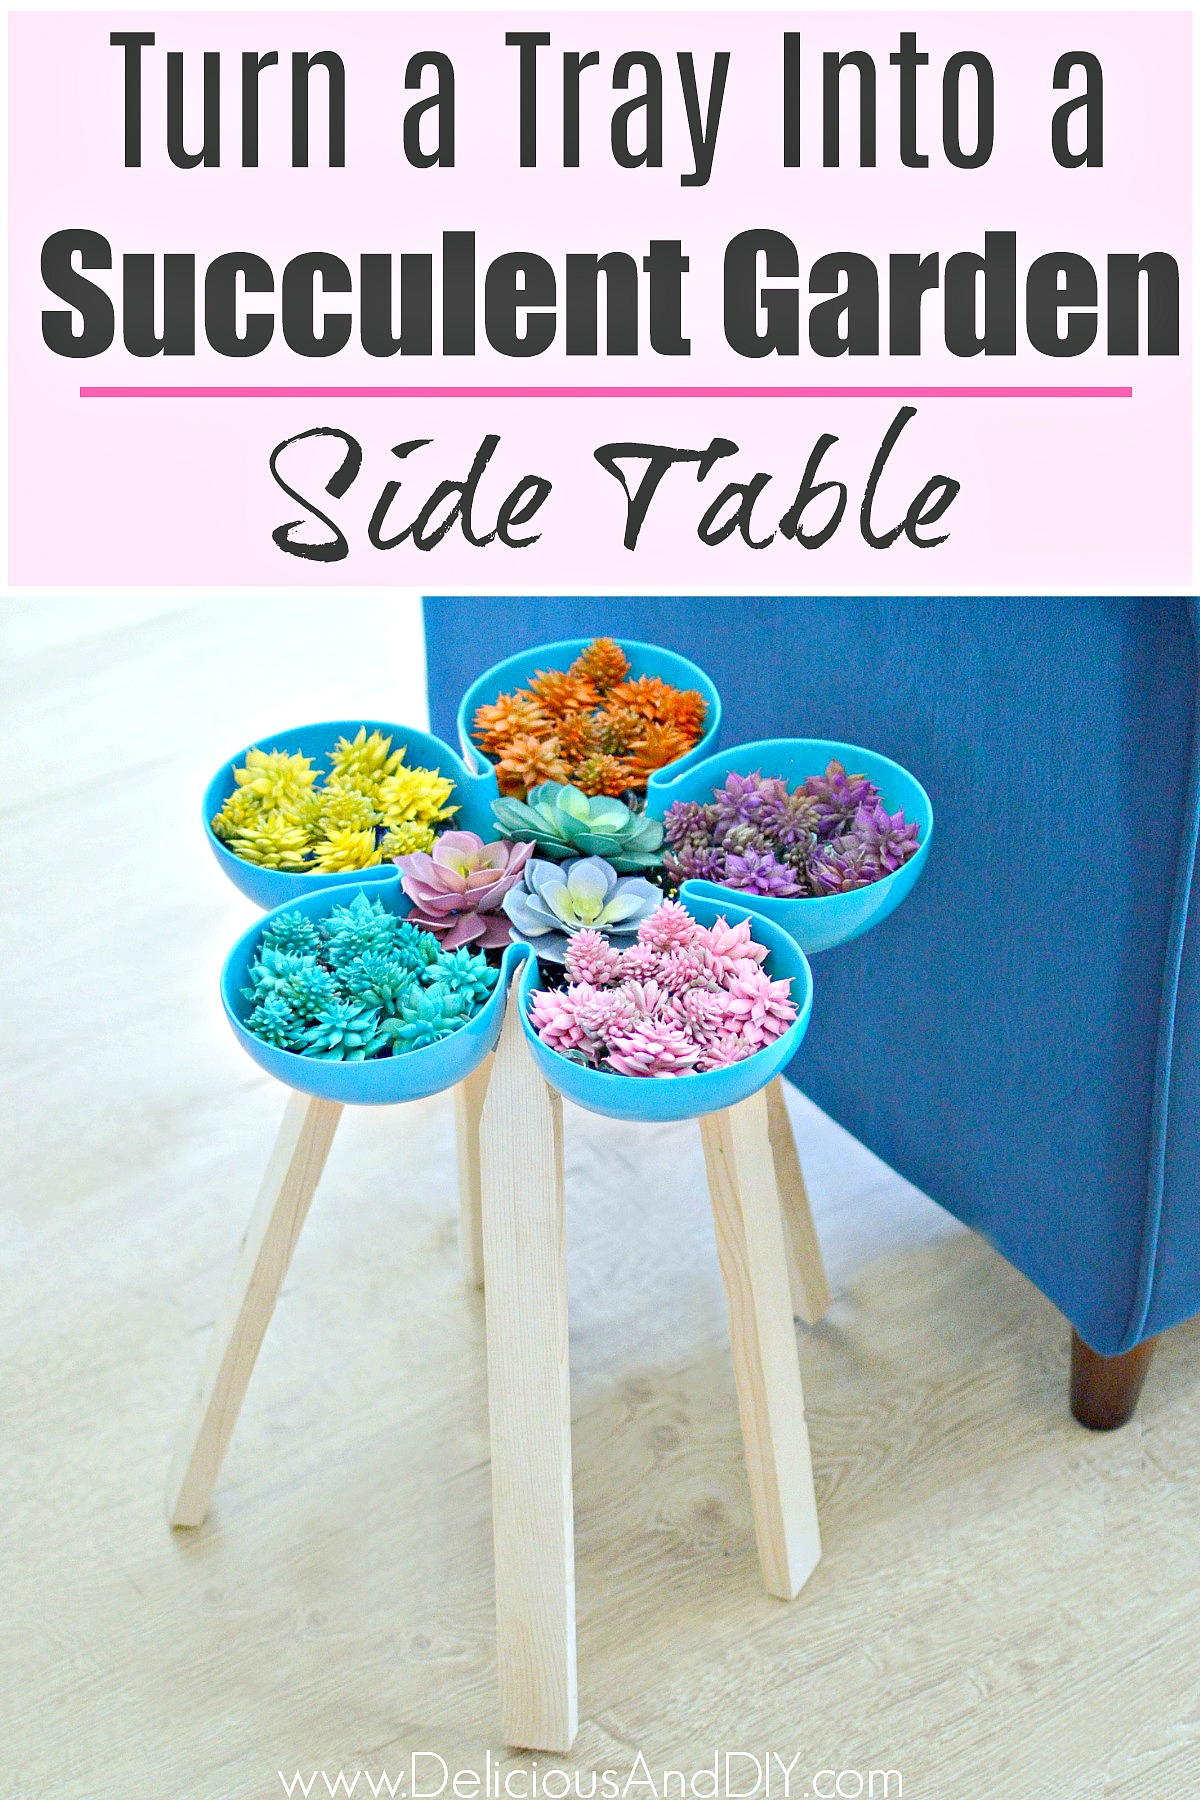 Pier 1 Imports Tray Transformed Into A Succulent Garden Side